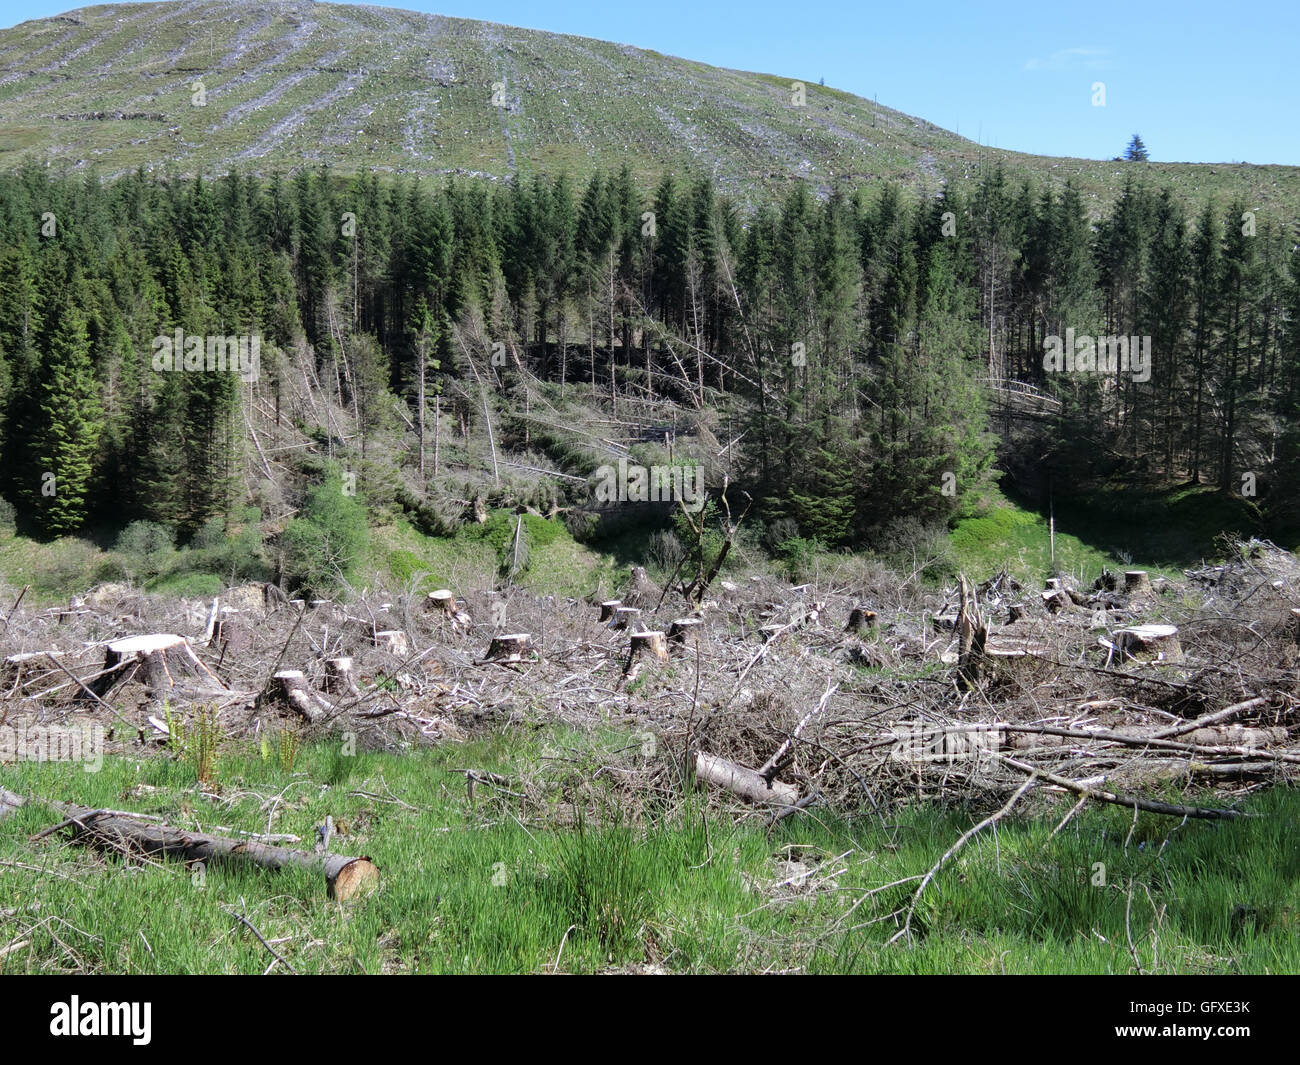 Timber Harvesting, Gamescleuch Hill, Ettrick Valley, Borders, Scotland, UK - Stock Image